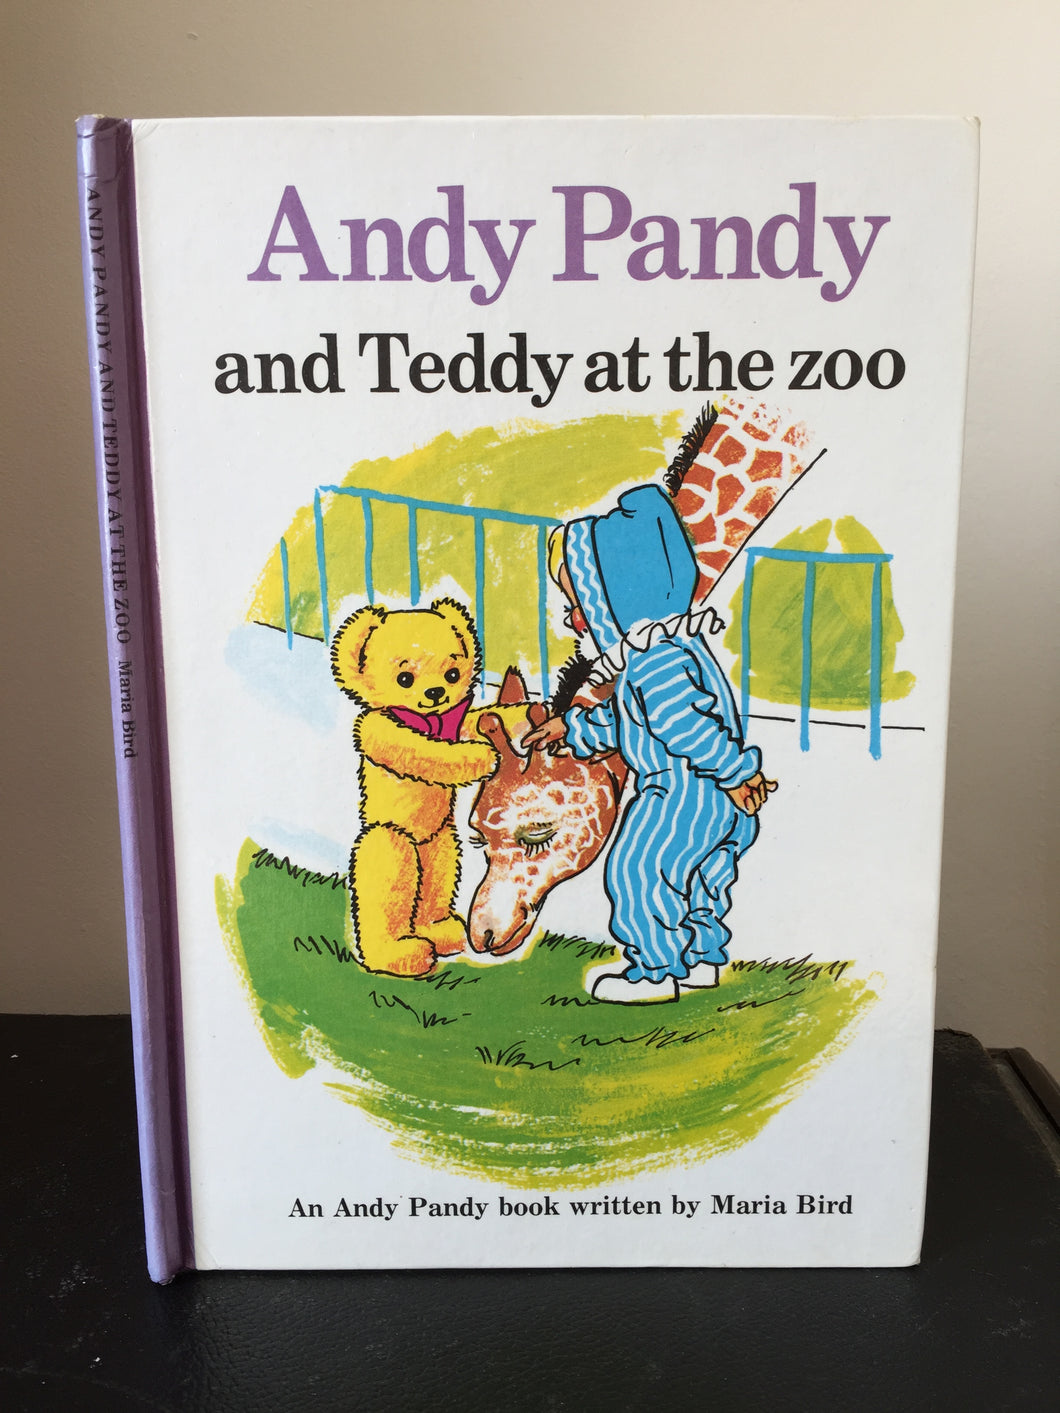 Andy Pandy and Teddy at the Zoo